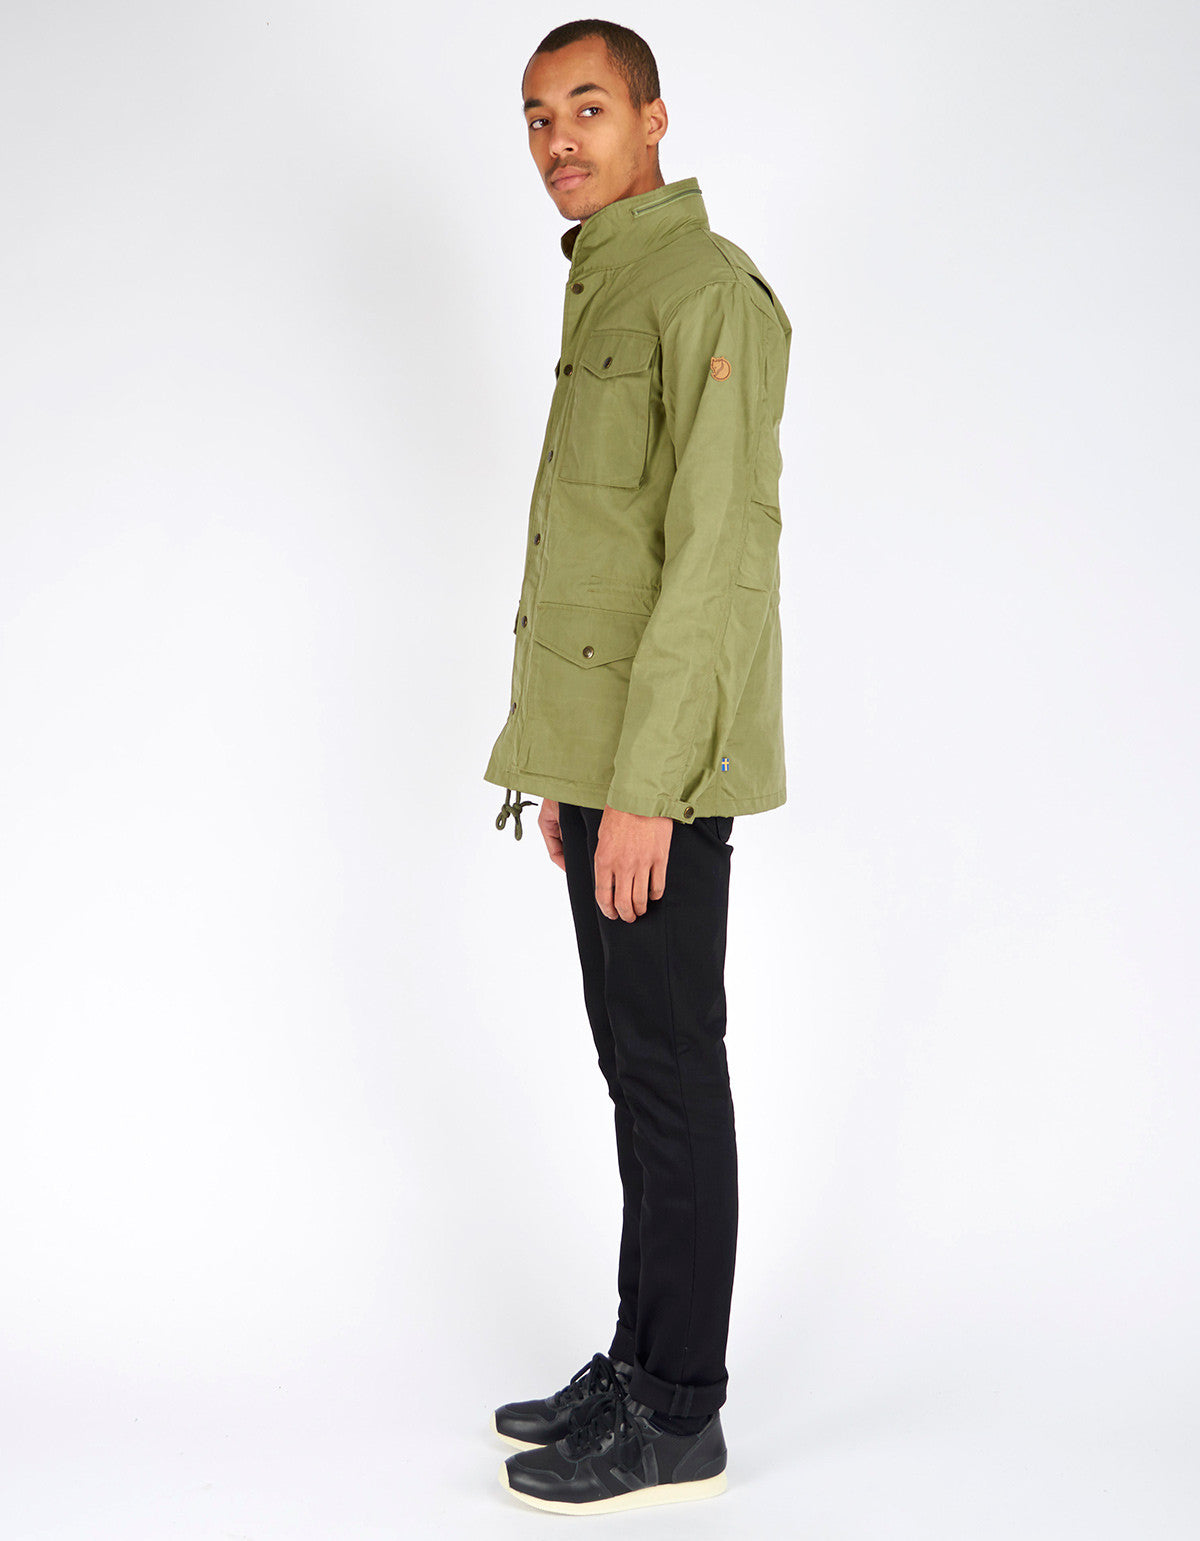 Fjallraven Raven Jacket Green - Still Life - 3